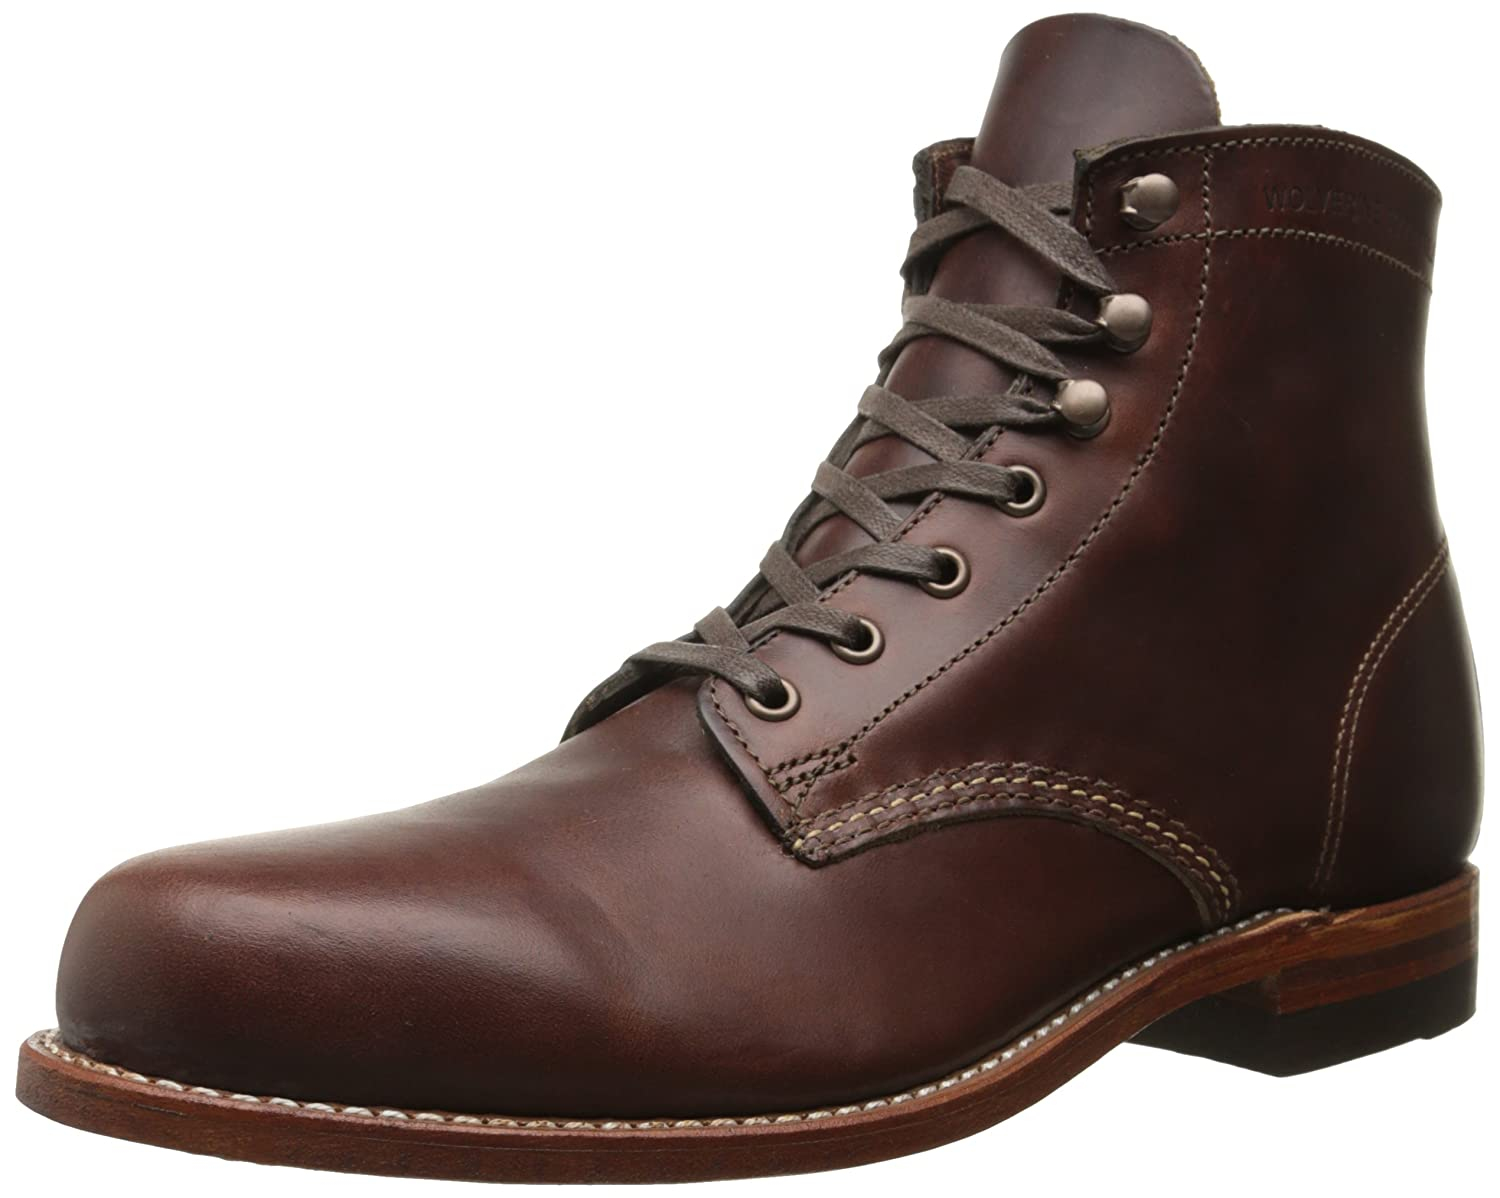 Wolverine 1000 Mile Men's Wolverine 1000 Mile Boots B00NL7U23Y 6 D(M) US|Brown